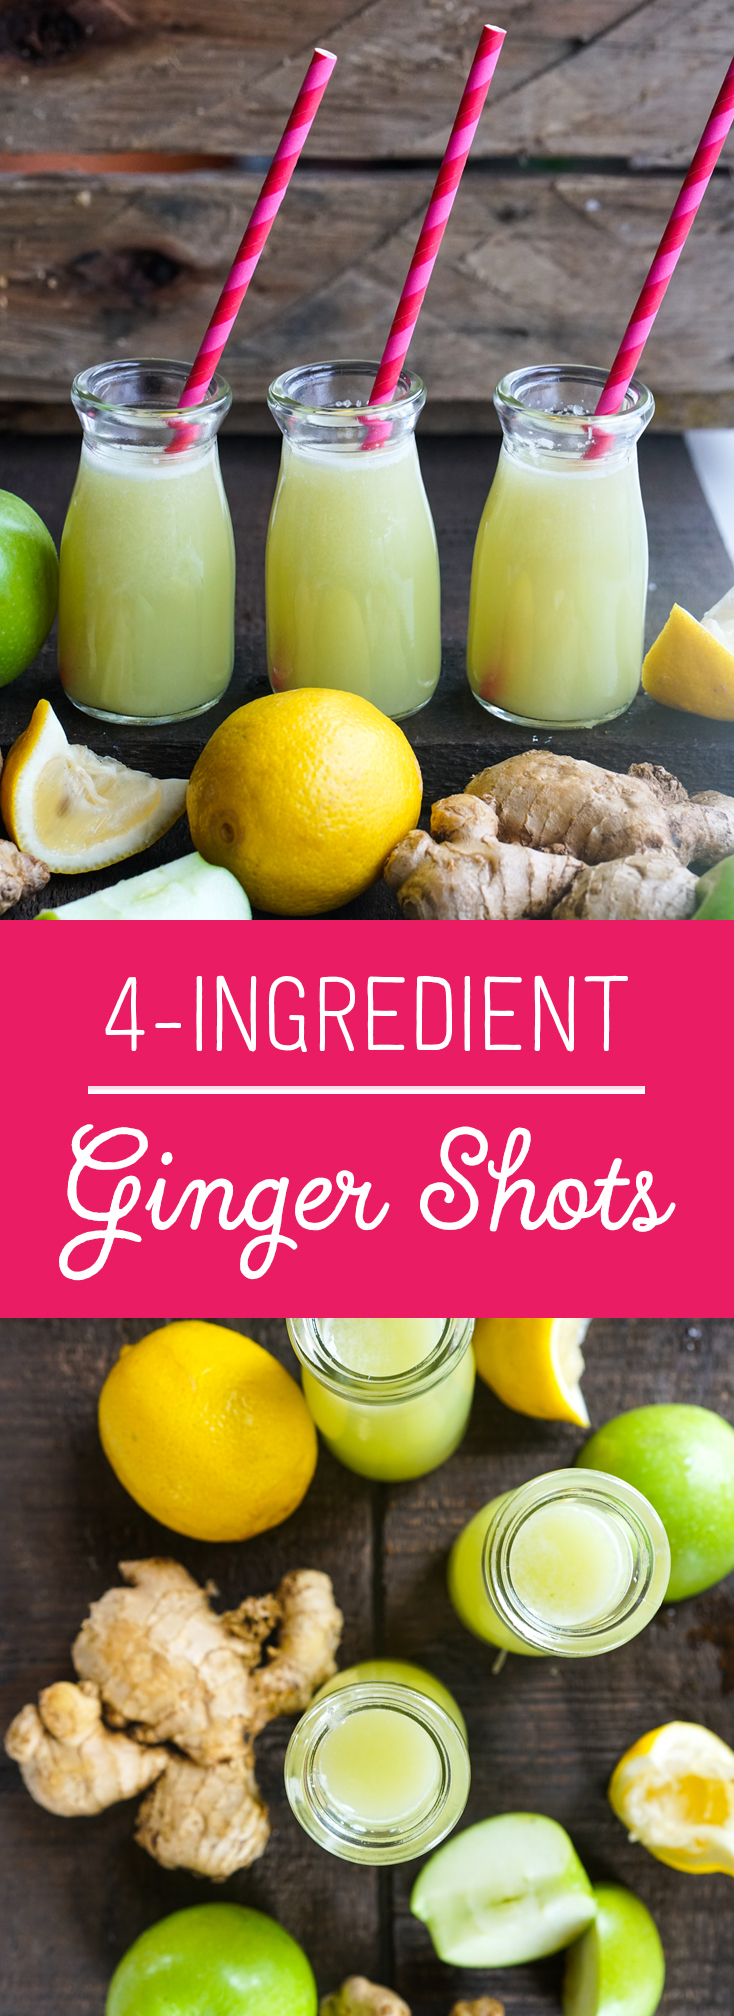 Healthy Ginger Shots to Help Prevent Flu